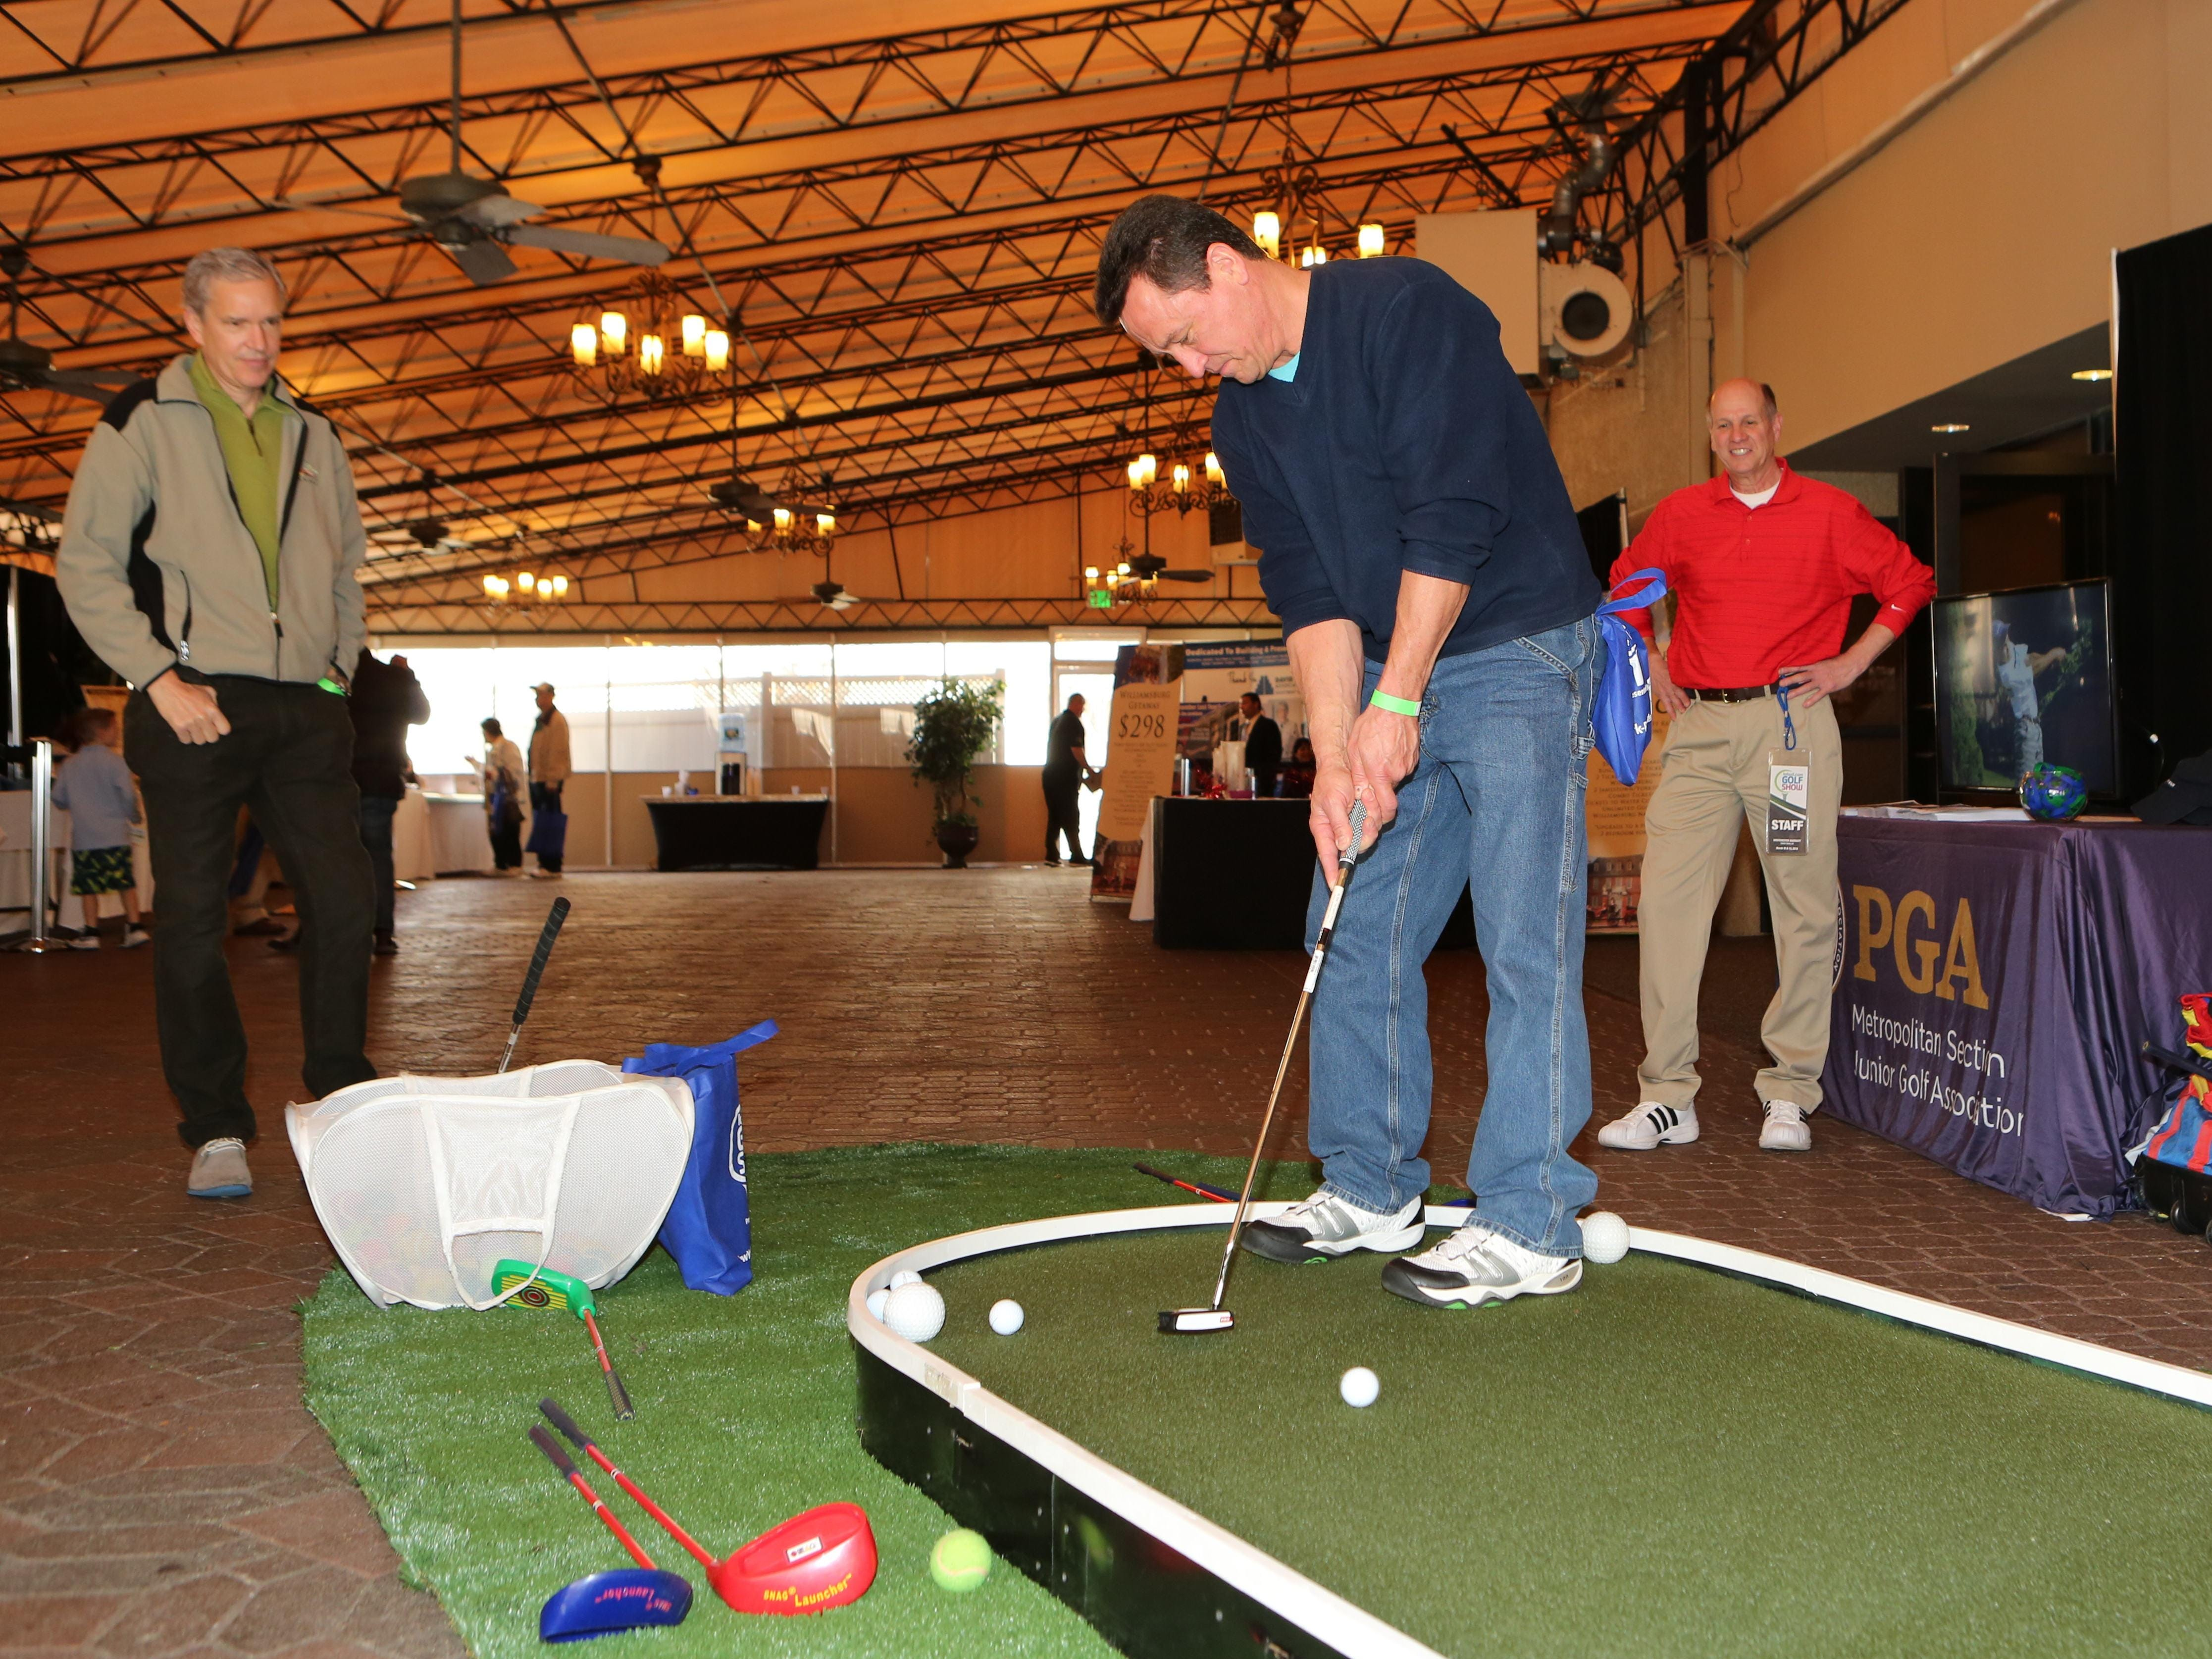 Joe Moravsky from Sherman, Connecticut, gives putting a try at the lohud.com Golf Show at the Westchester Marriott in Tarrytown Saturday. The show continues Sunday.